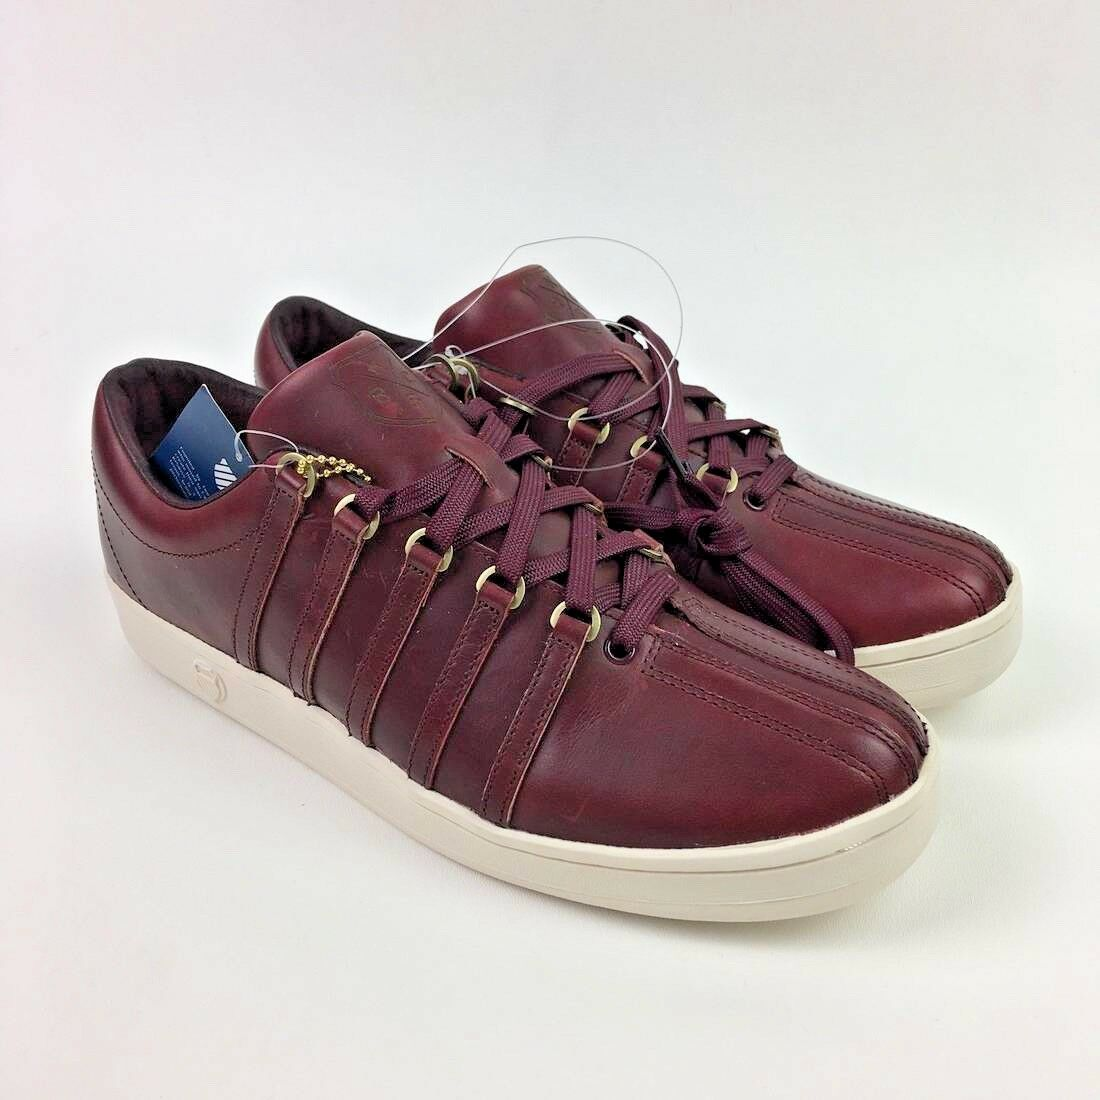 KSWISS 88 CLASSIC HORWEEN EDITION SNEAKERS MENS SIZE 8 NEW